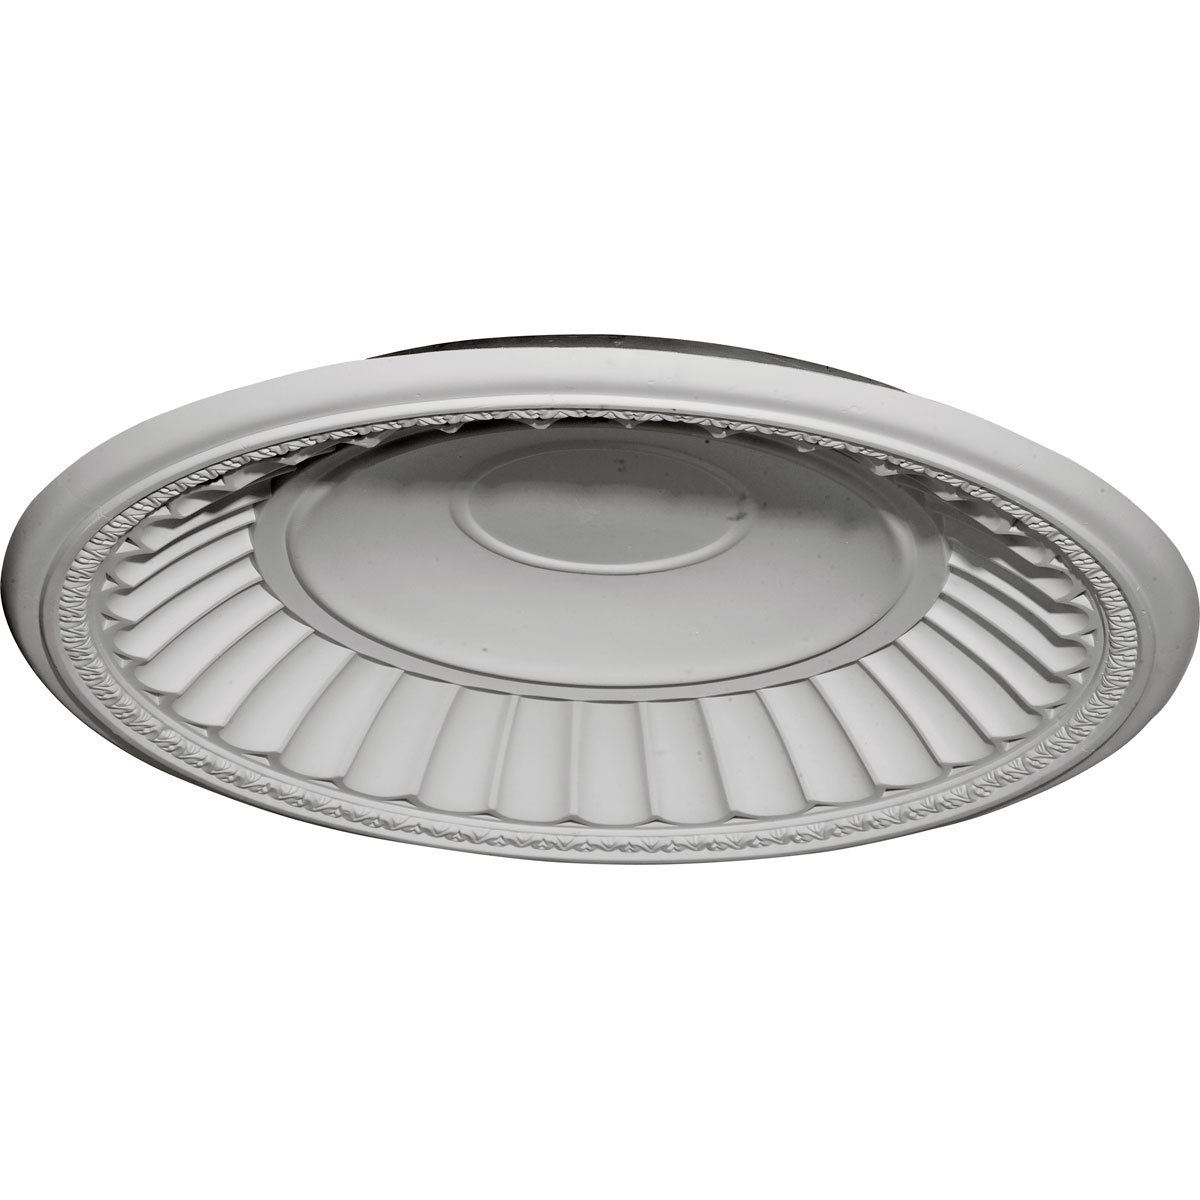 """DOME26DU 26-7/8""""OD x 25""""ID x 3-7/8""""D Dublin Recessed Mount Ceiling Dome (24-1/2""""Diameter x 3-1/4""""D Rough Opening)"""